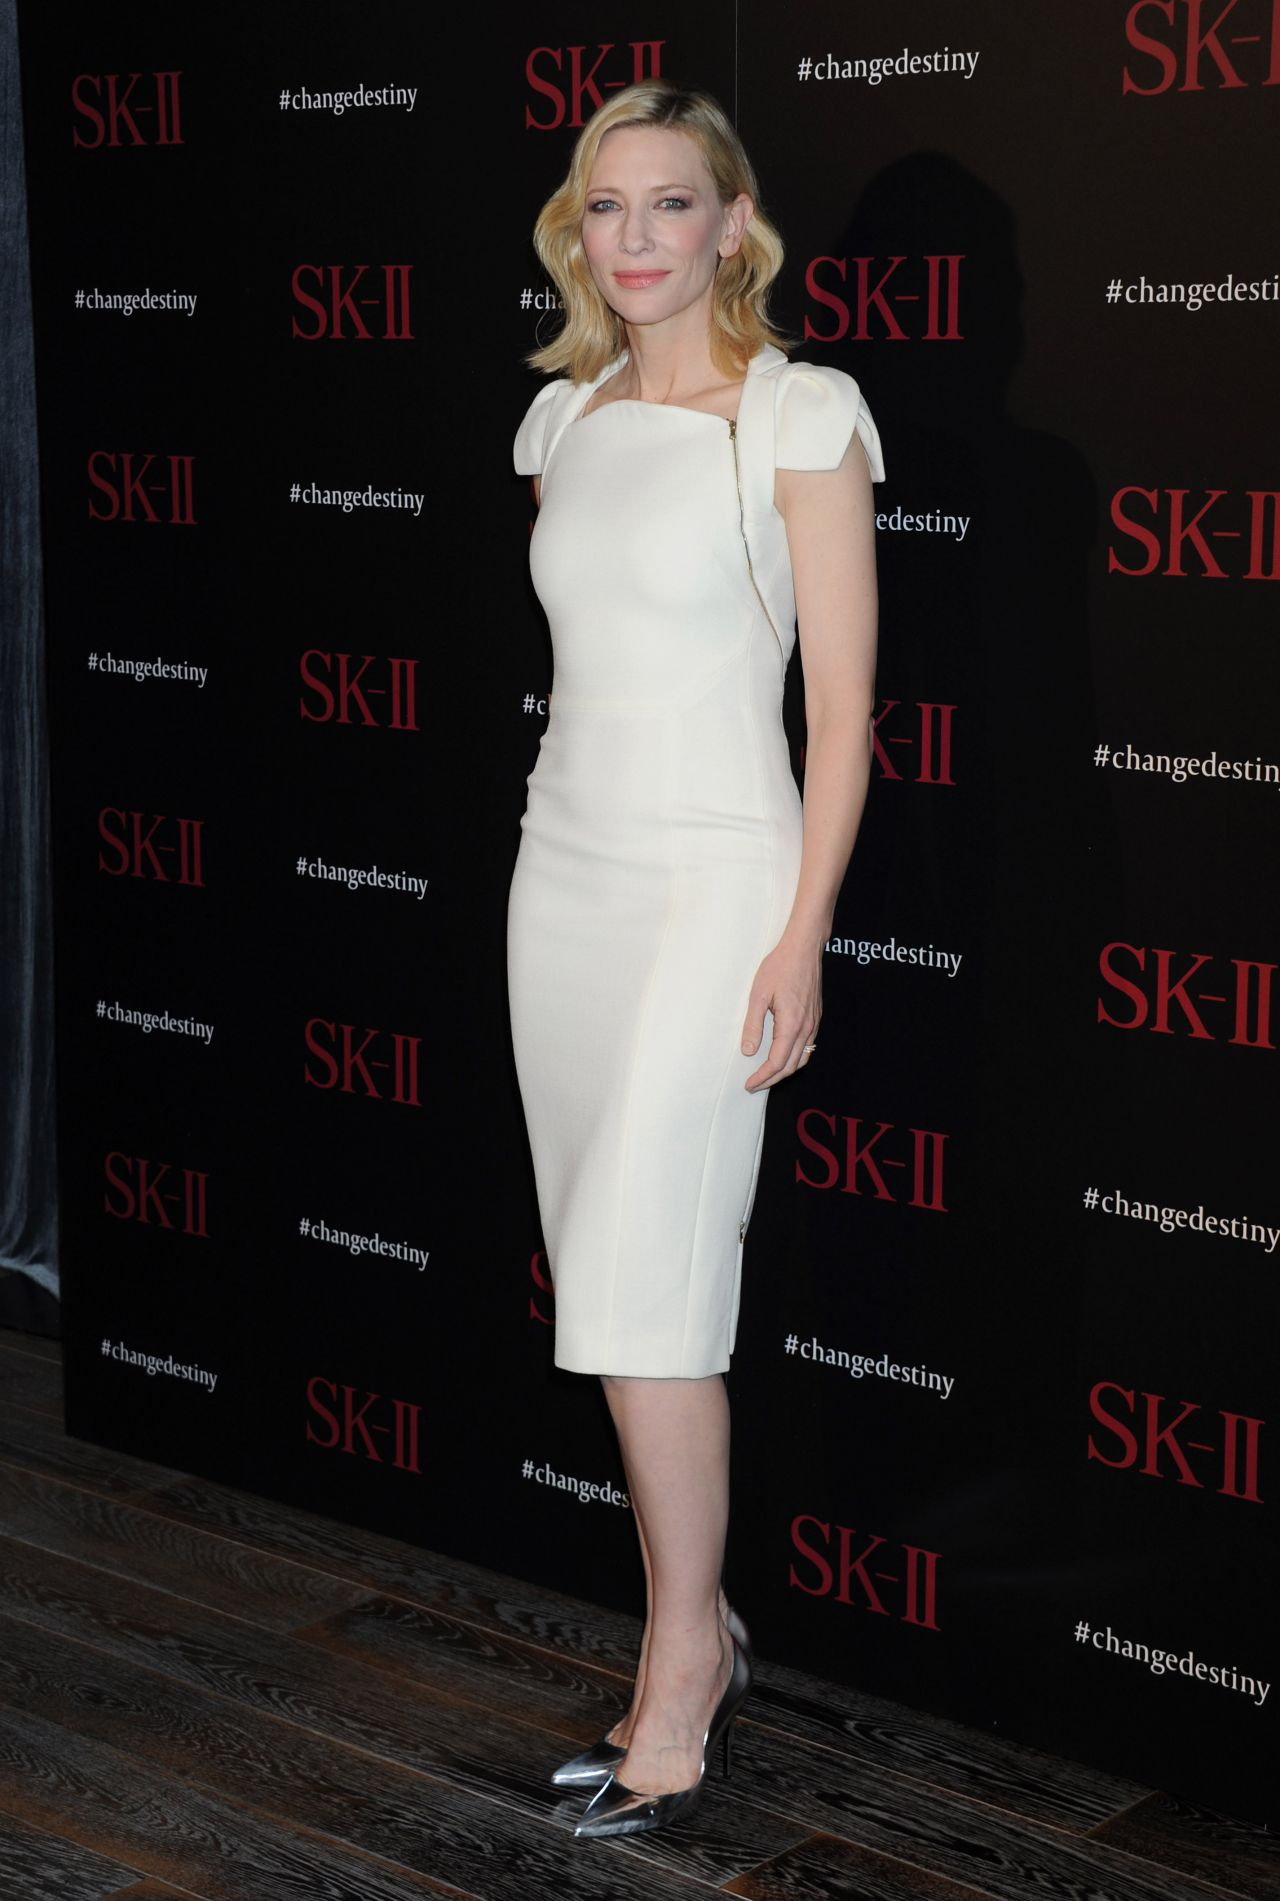 cate-blanchett-sk-ii-changedestiny-forum-in-los-angeles-2-26-2016-5